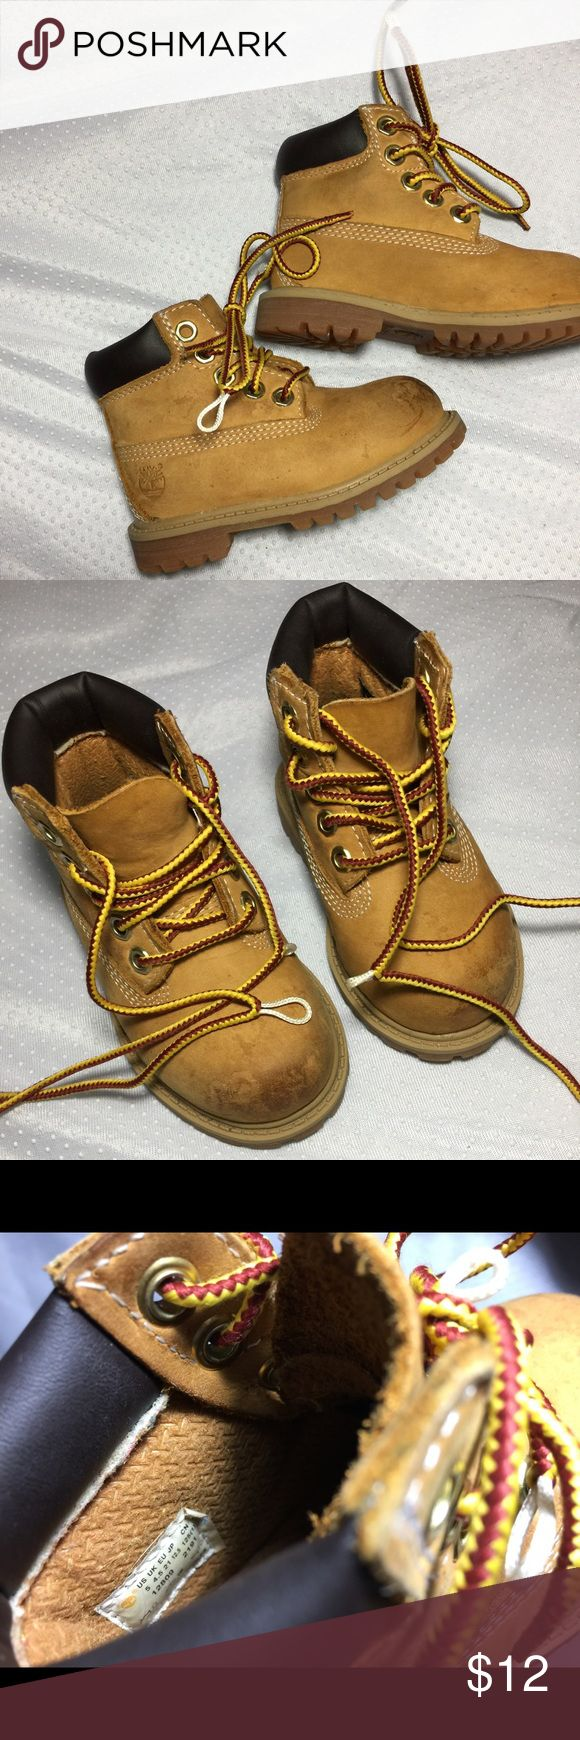 Toddlers Unisex Timberlands Size:5 Flaw: the laces are popping out and the very front looks like there are very small scratches. Once I clean them I will re-upload. ✨Buy 5+ (separate) children's items and get them each for $3. (dresses will be $5; jeans $5; baby's nikes/timberlands/converse $7)✨ Timberland Shoes Boots